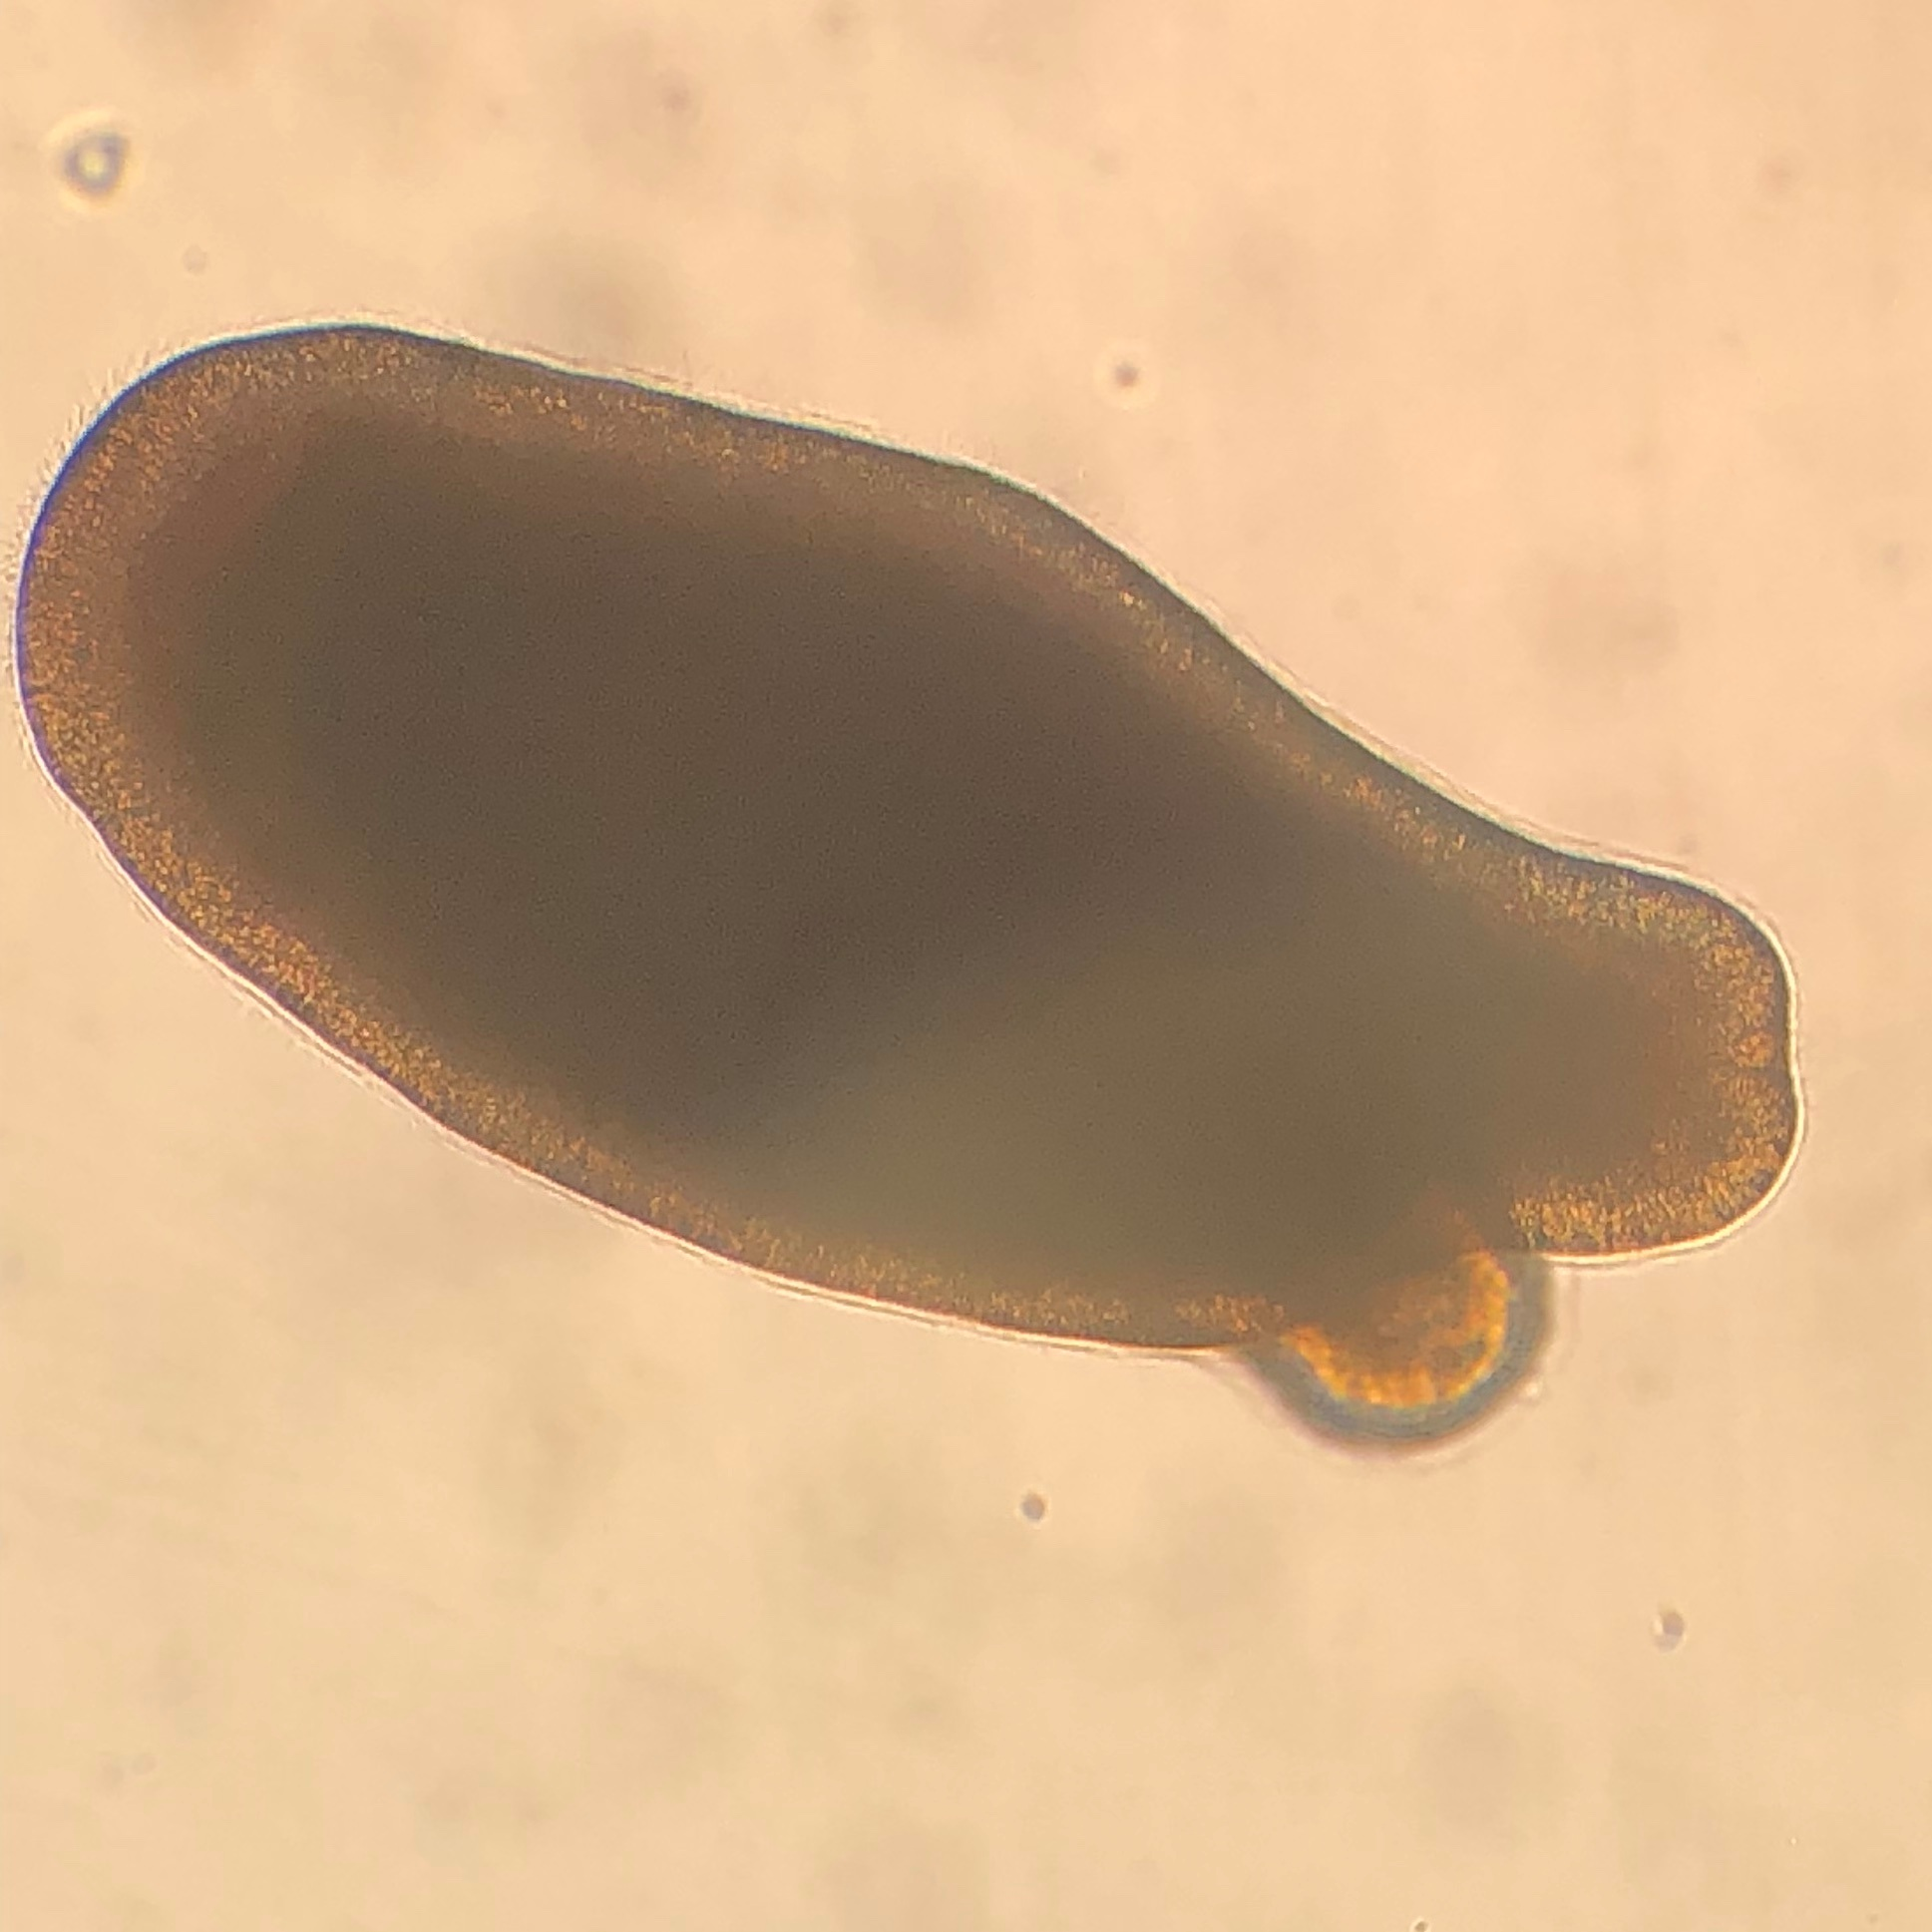 A 3-day-old, actively swimming  Diploria labyrinthiformis  larva.